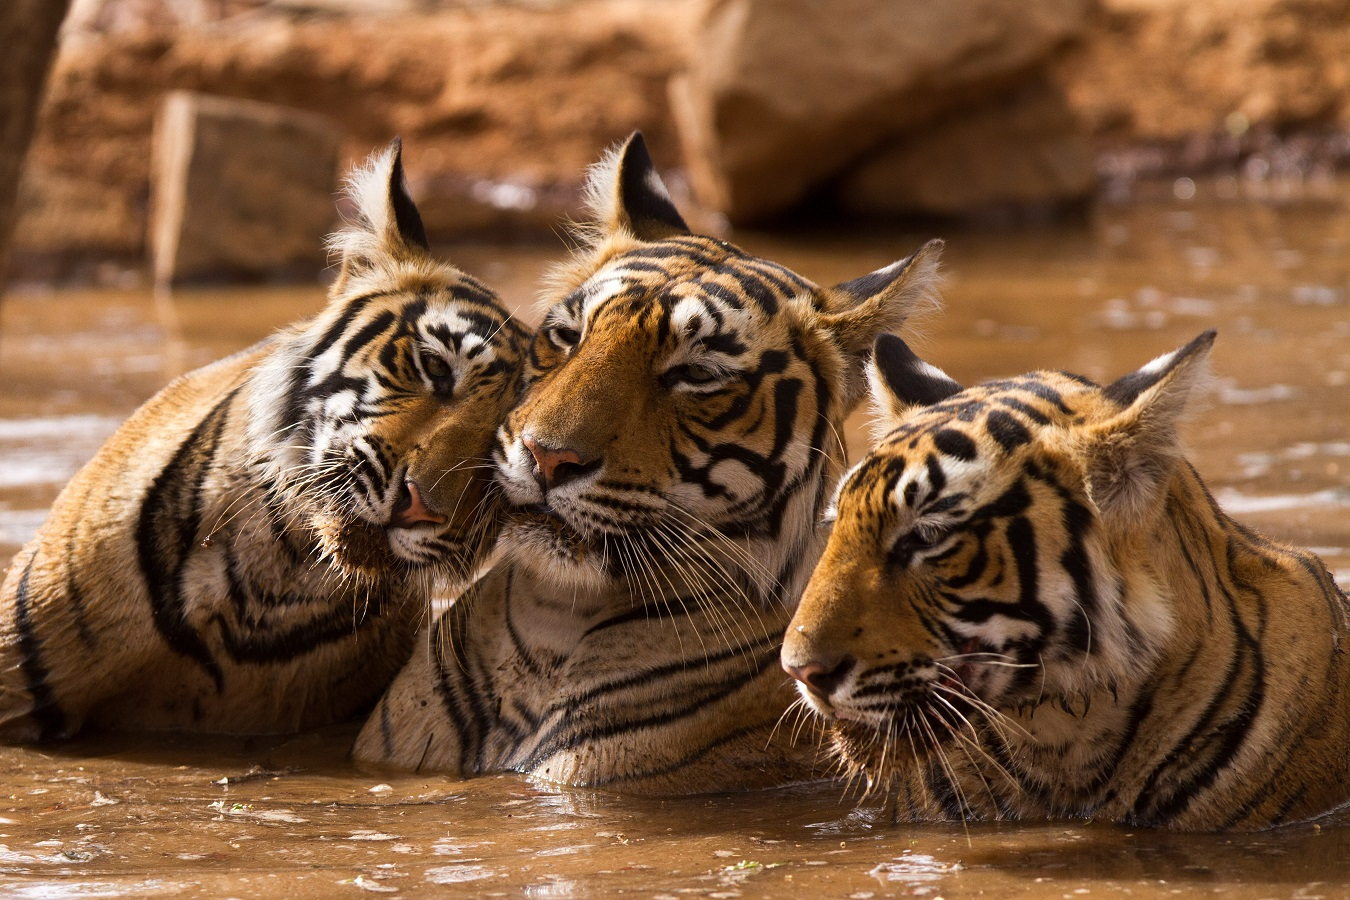 Sighting of Tigers in Ranthambore